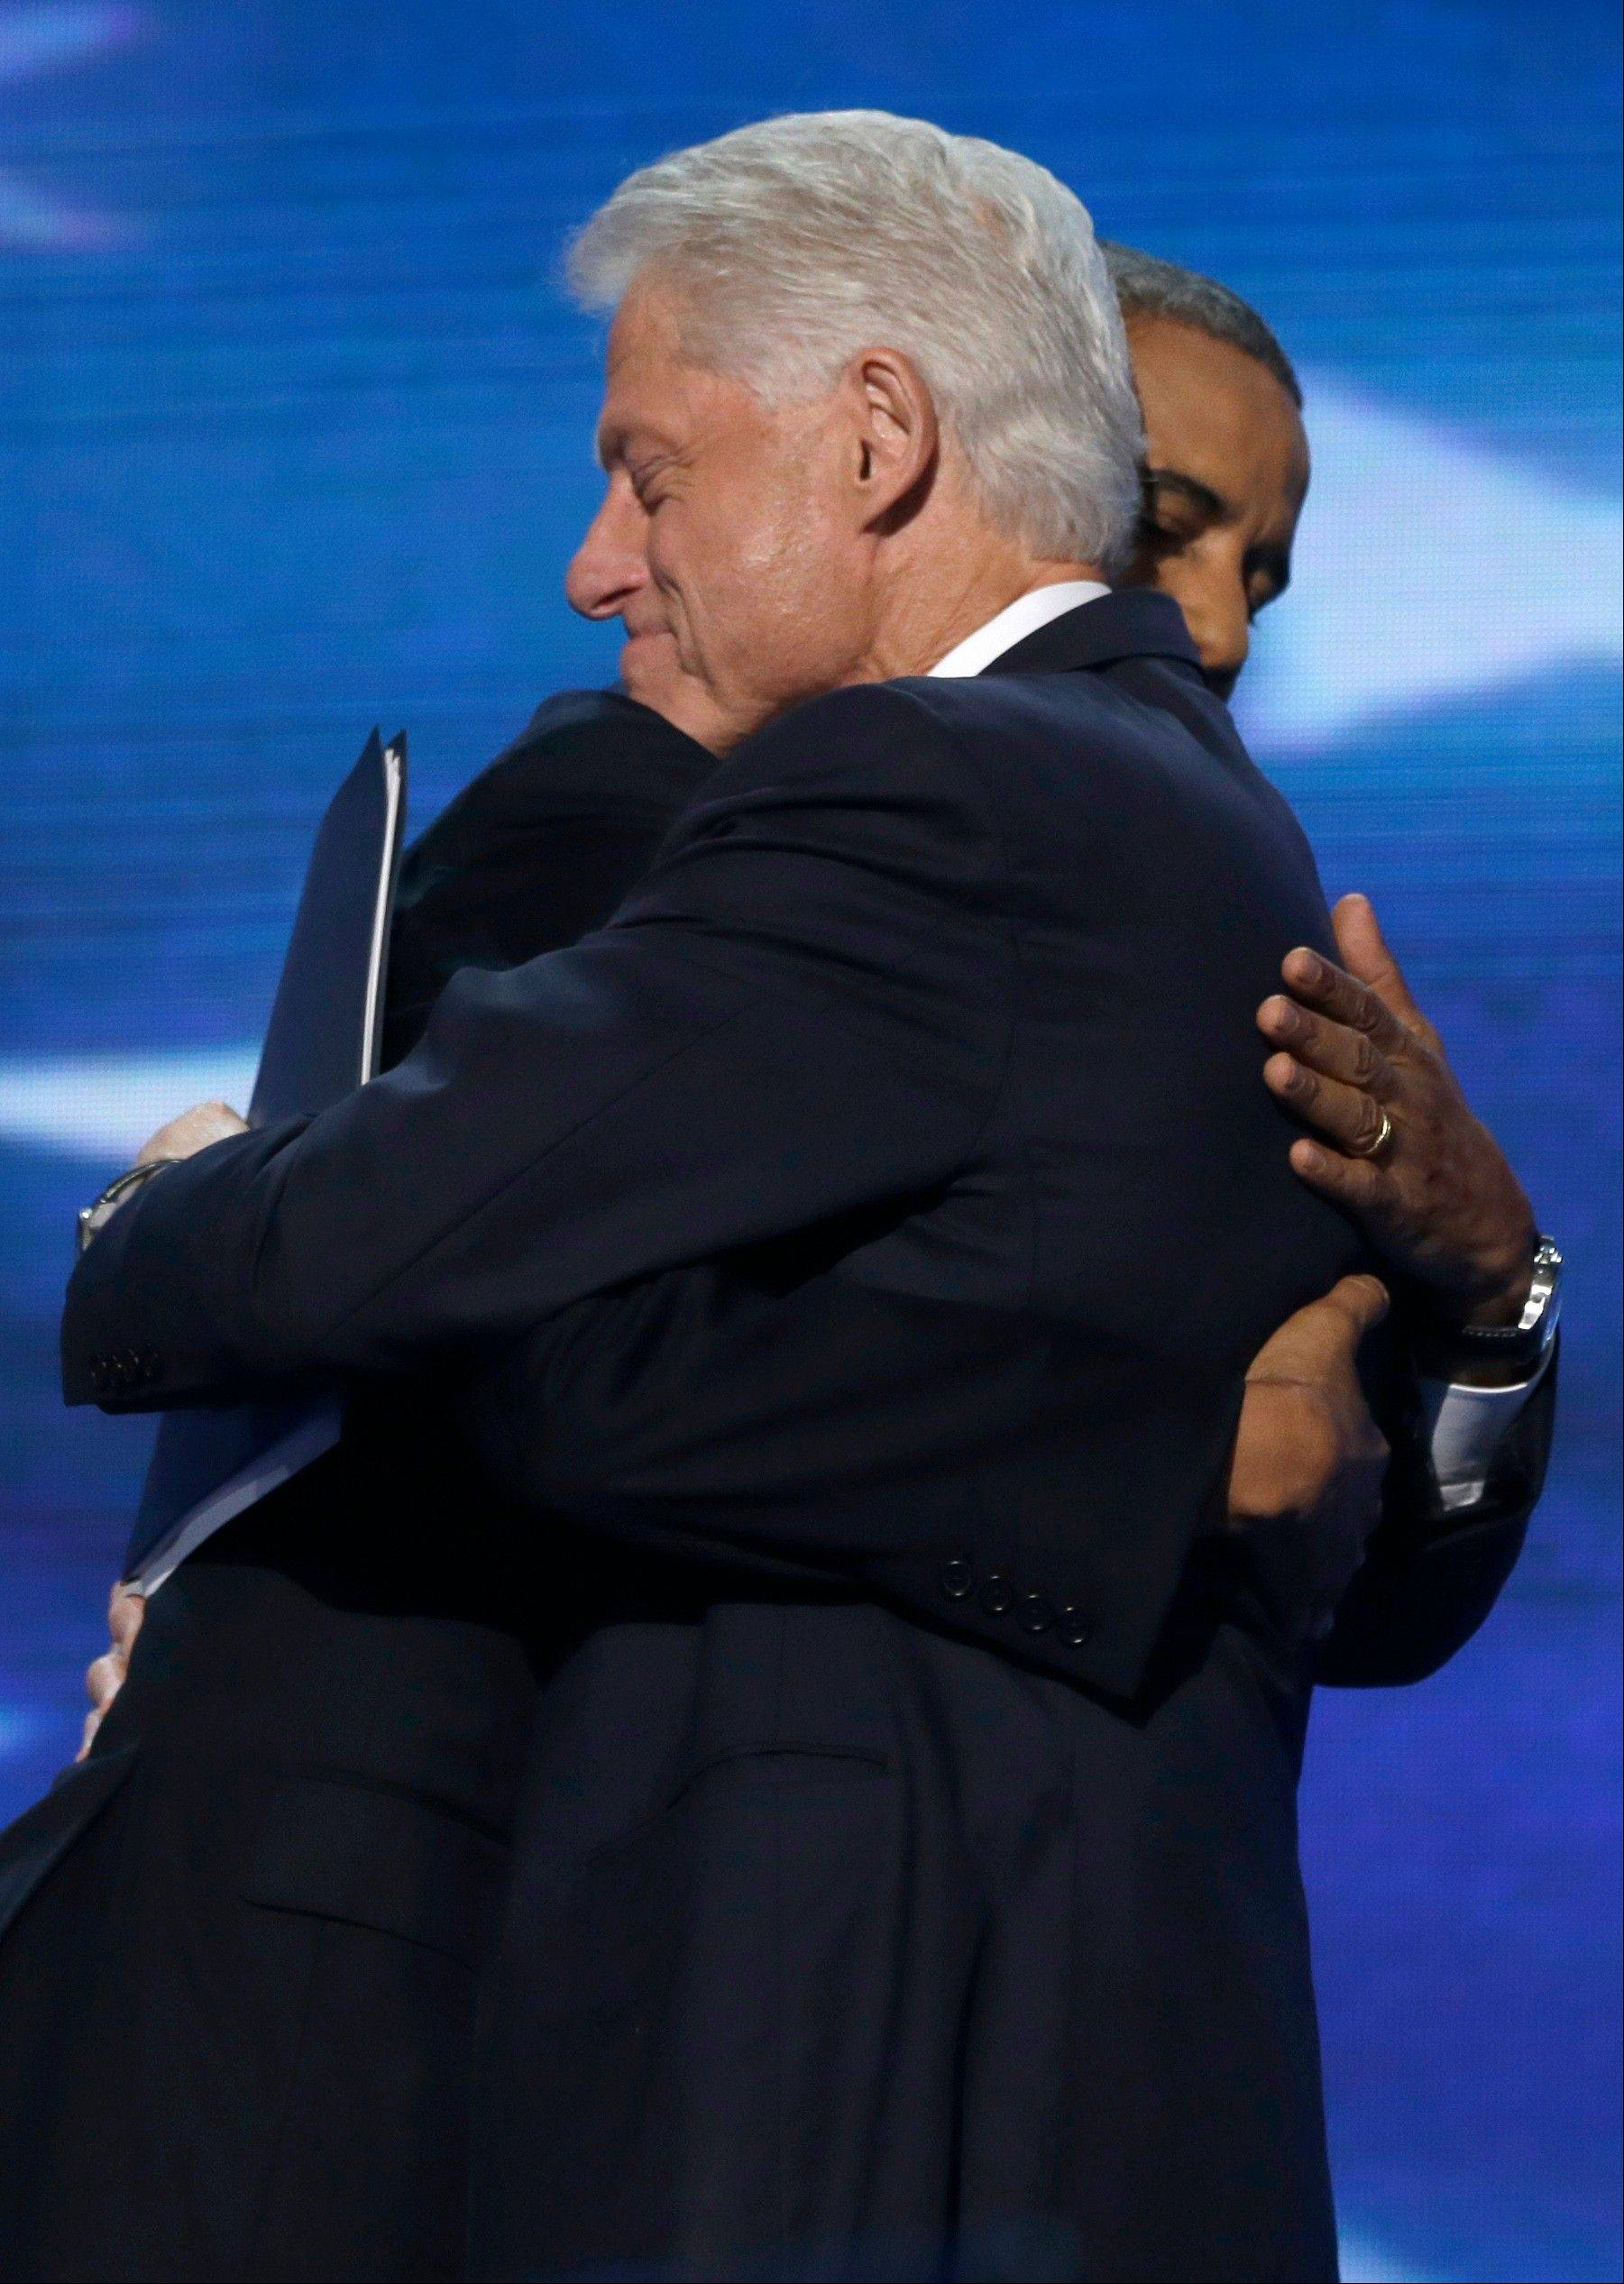 President Barack Obama hugs former President Bill Clinton during the Democratic National Convention in Charlotte, N.C., on Wednesday.